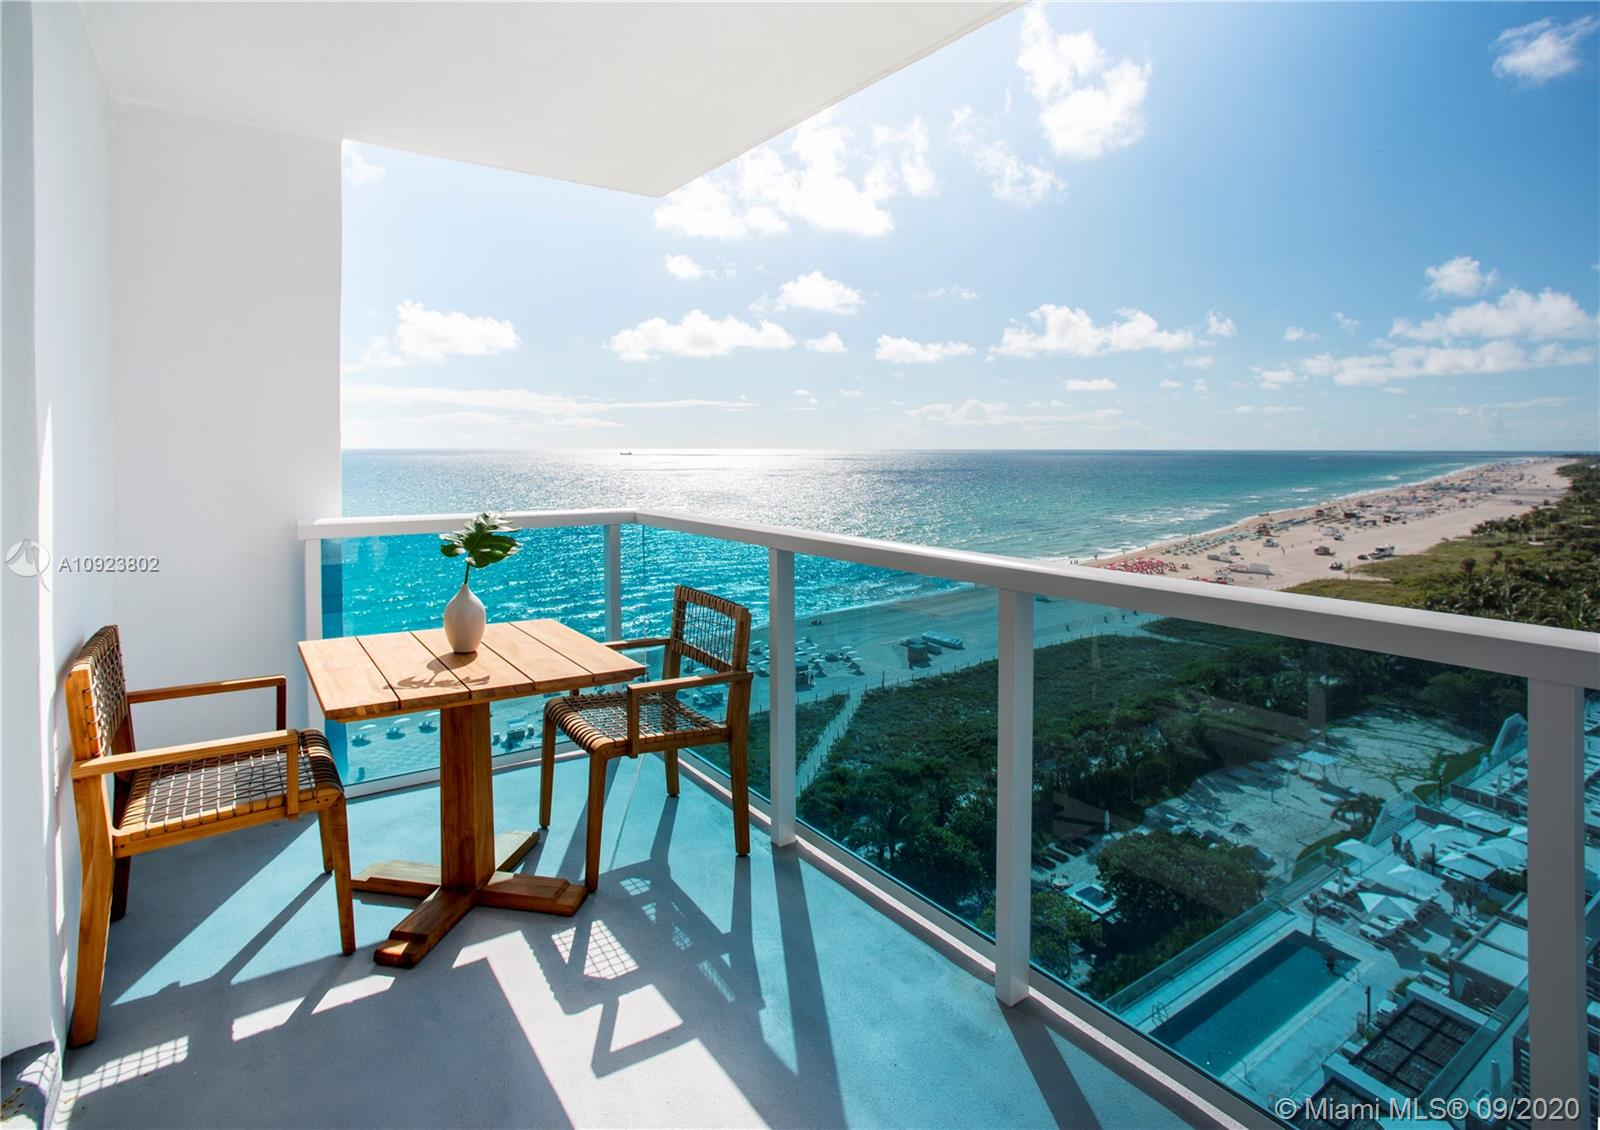 "Eco-luxury, spa-living, expansive views, comfort and convenience in a turnkey corner residence at 1 Hotel & Homes in Miami Beach. This 2-bedroom is the most desirable : the ""20-line"" with bedrooms directly facing the ocean! Tastefully appointed by acclaimed architect Debora Aguiar with washed woods, natural fibers and a soothing, harmonious atmosphere. Both bedrooms enjoy panoramic ocean views with floor-to-ceiling glass. Endless beach vista from the SE facing terrace.  Residents can access all services & amenities including three pools, rooftop lounge, restaurants, beach service, private beach club & wellness program. The 1 Hotel & Homes is a revitalizing oasis with the best of South Beach just outside your door. This unit is furnished and turn-key & the BEST priced ""20 line""  unit!"